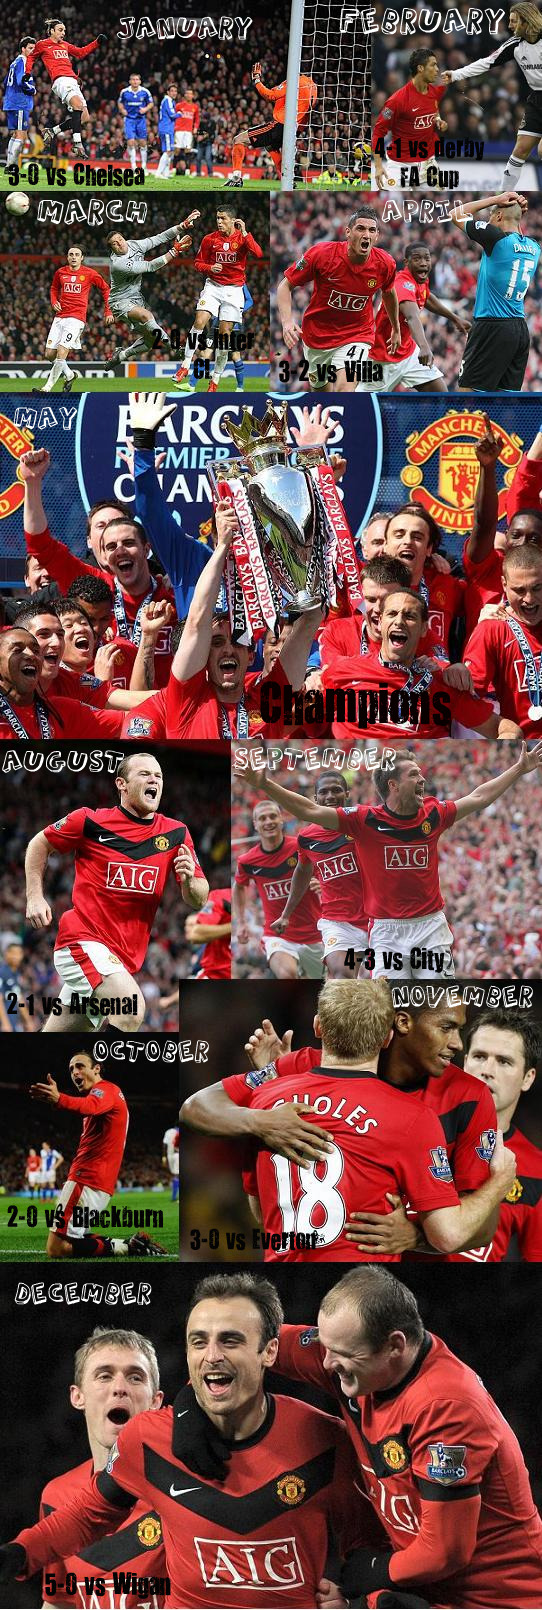 Manchester United 2009 summary